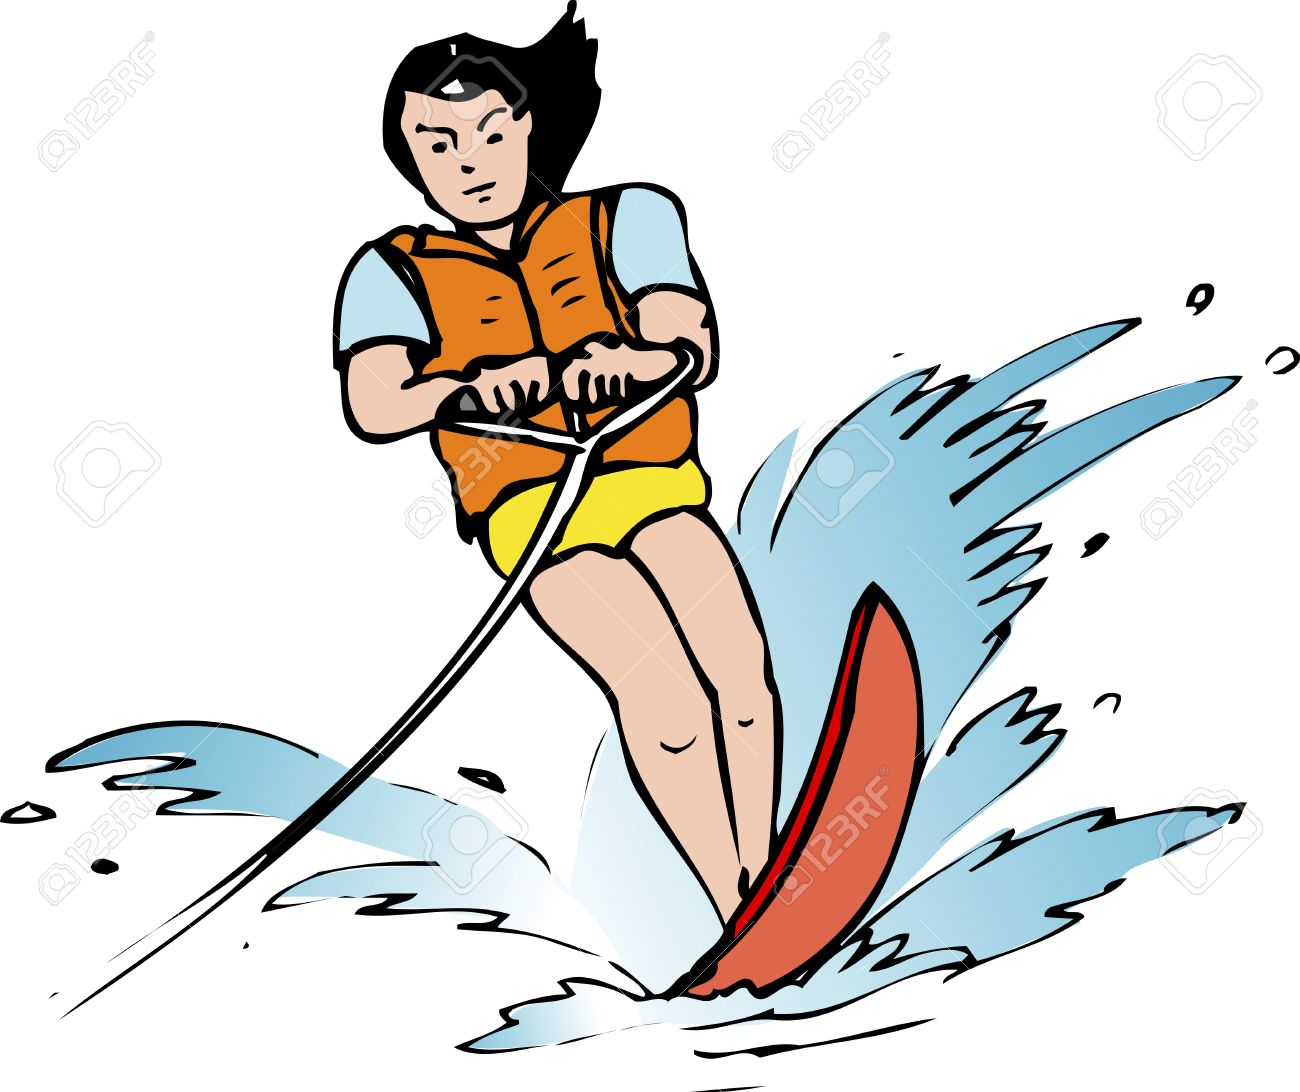 Water skiig clipart png free Water skiing clipart 5 » Clipart Station png free